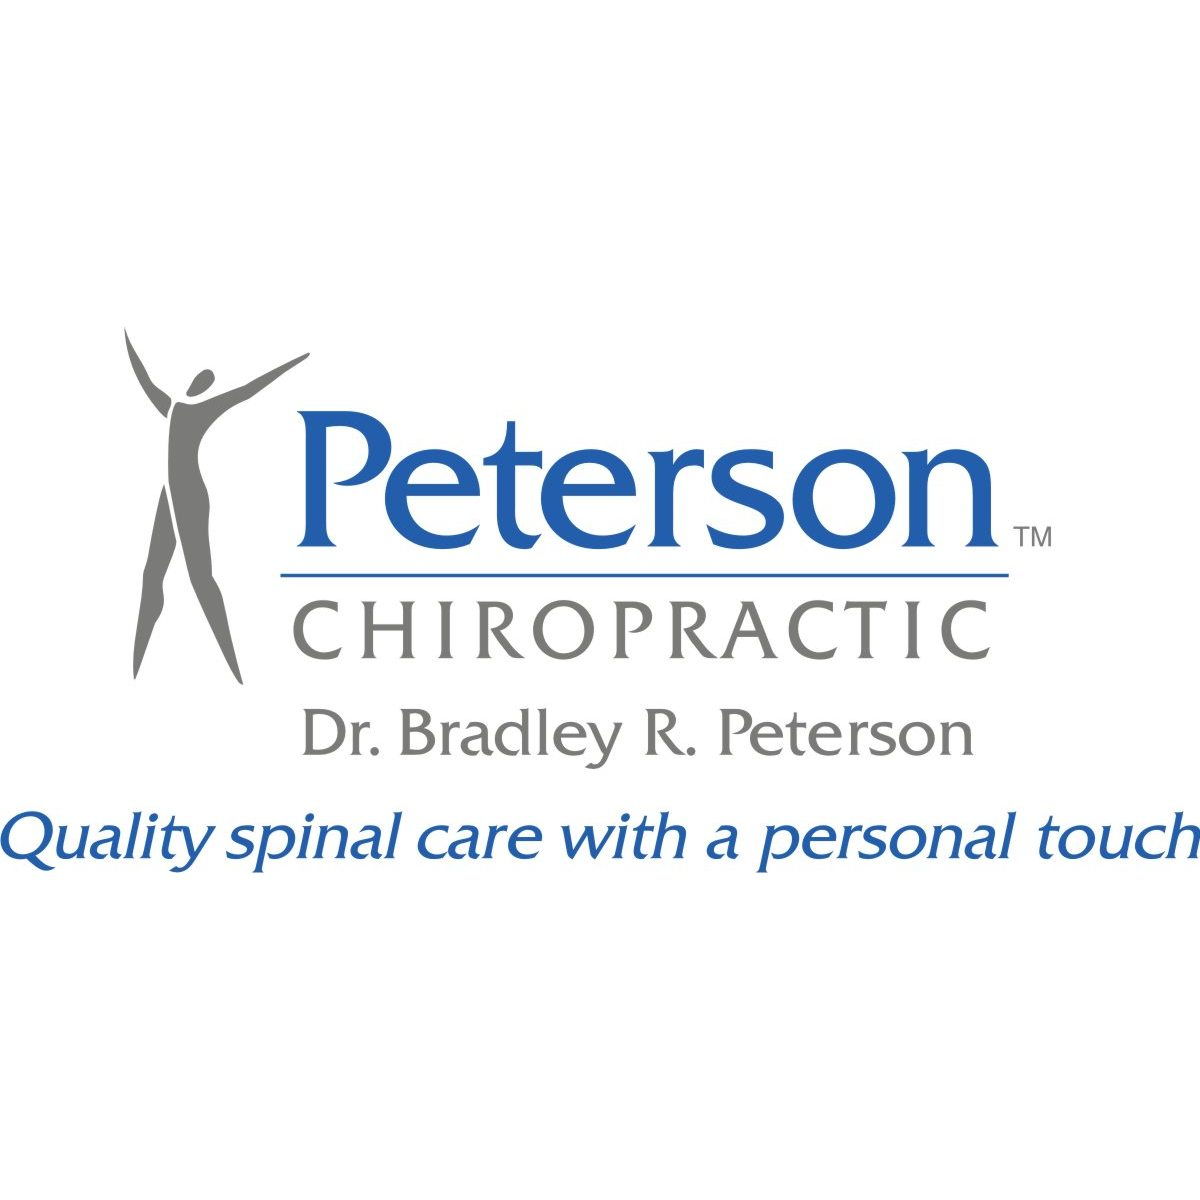 Peterson Chiropractic - ad image